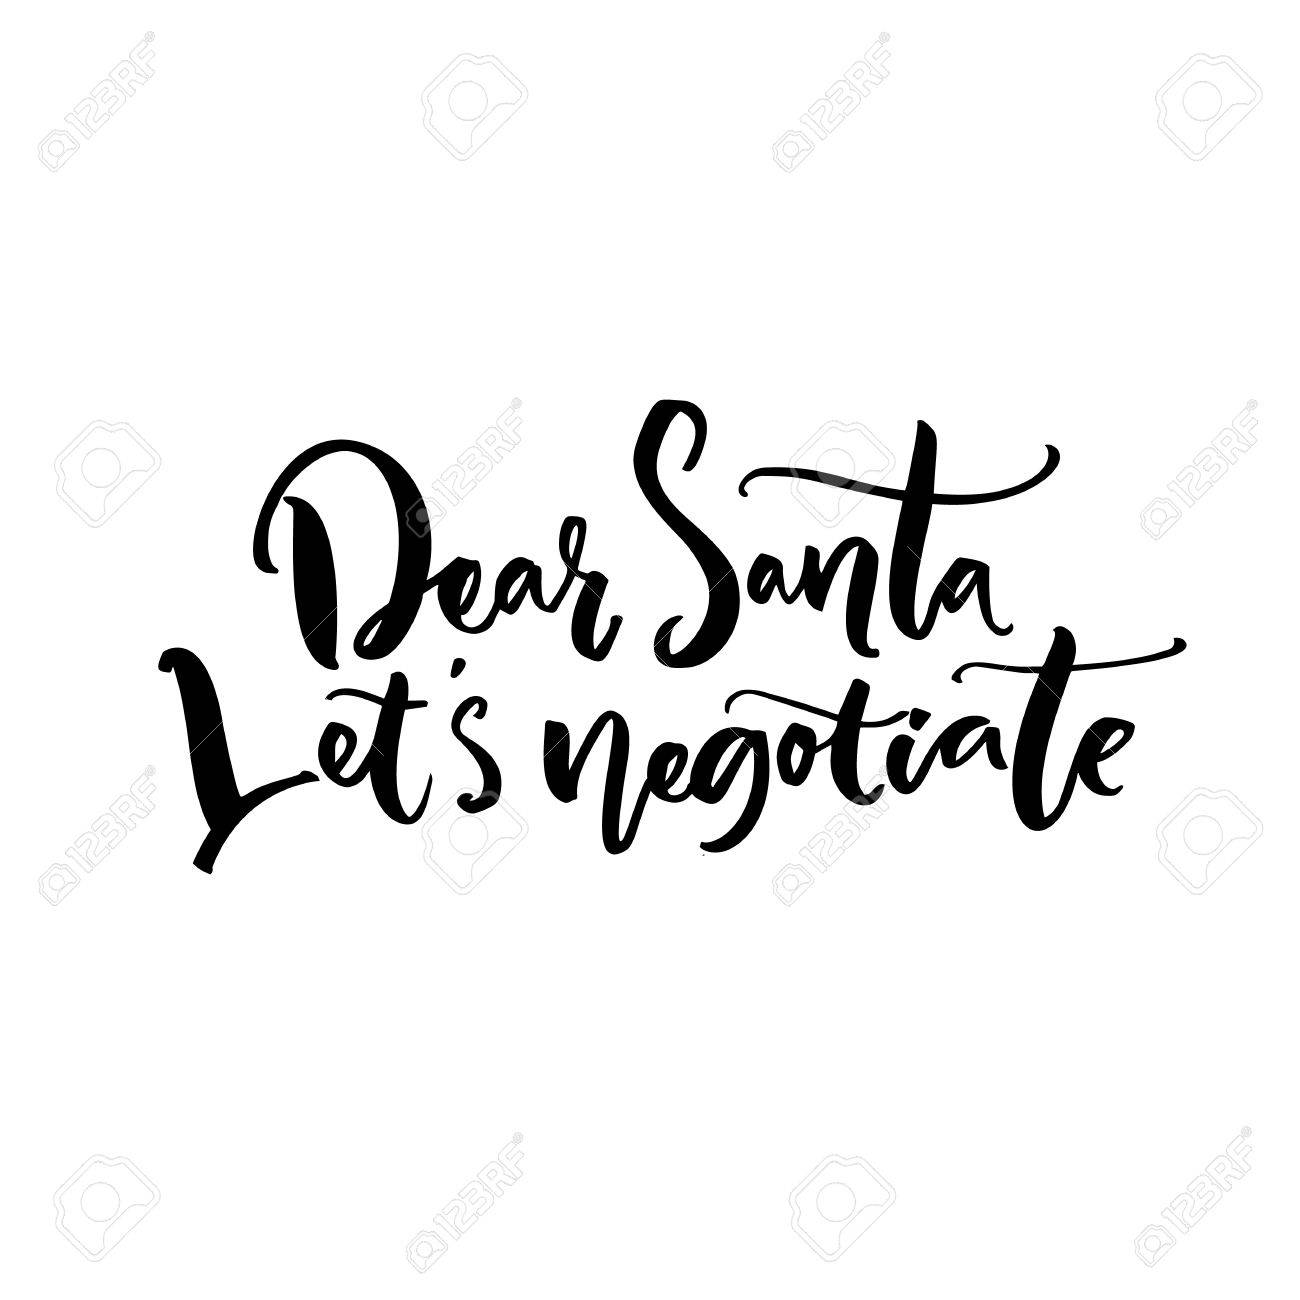 Dear Santa LetS Negotiate Funny Calligraphy Phrase For Christmas